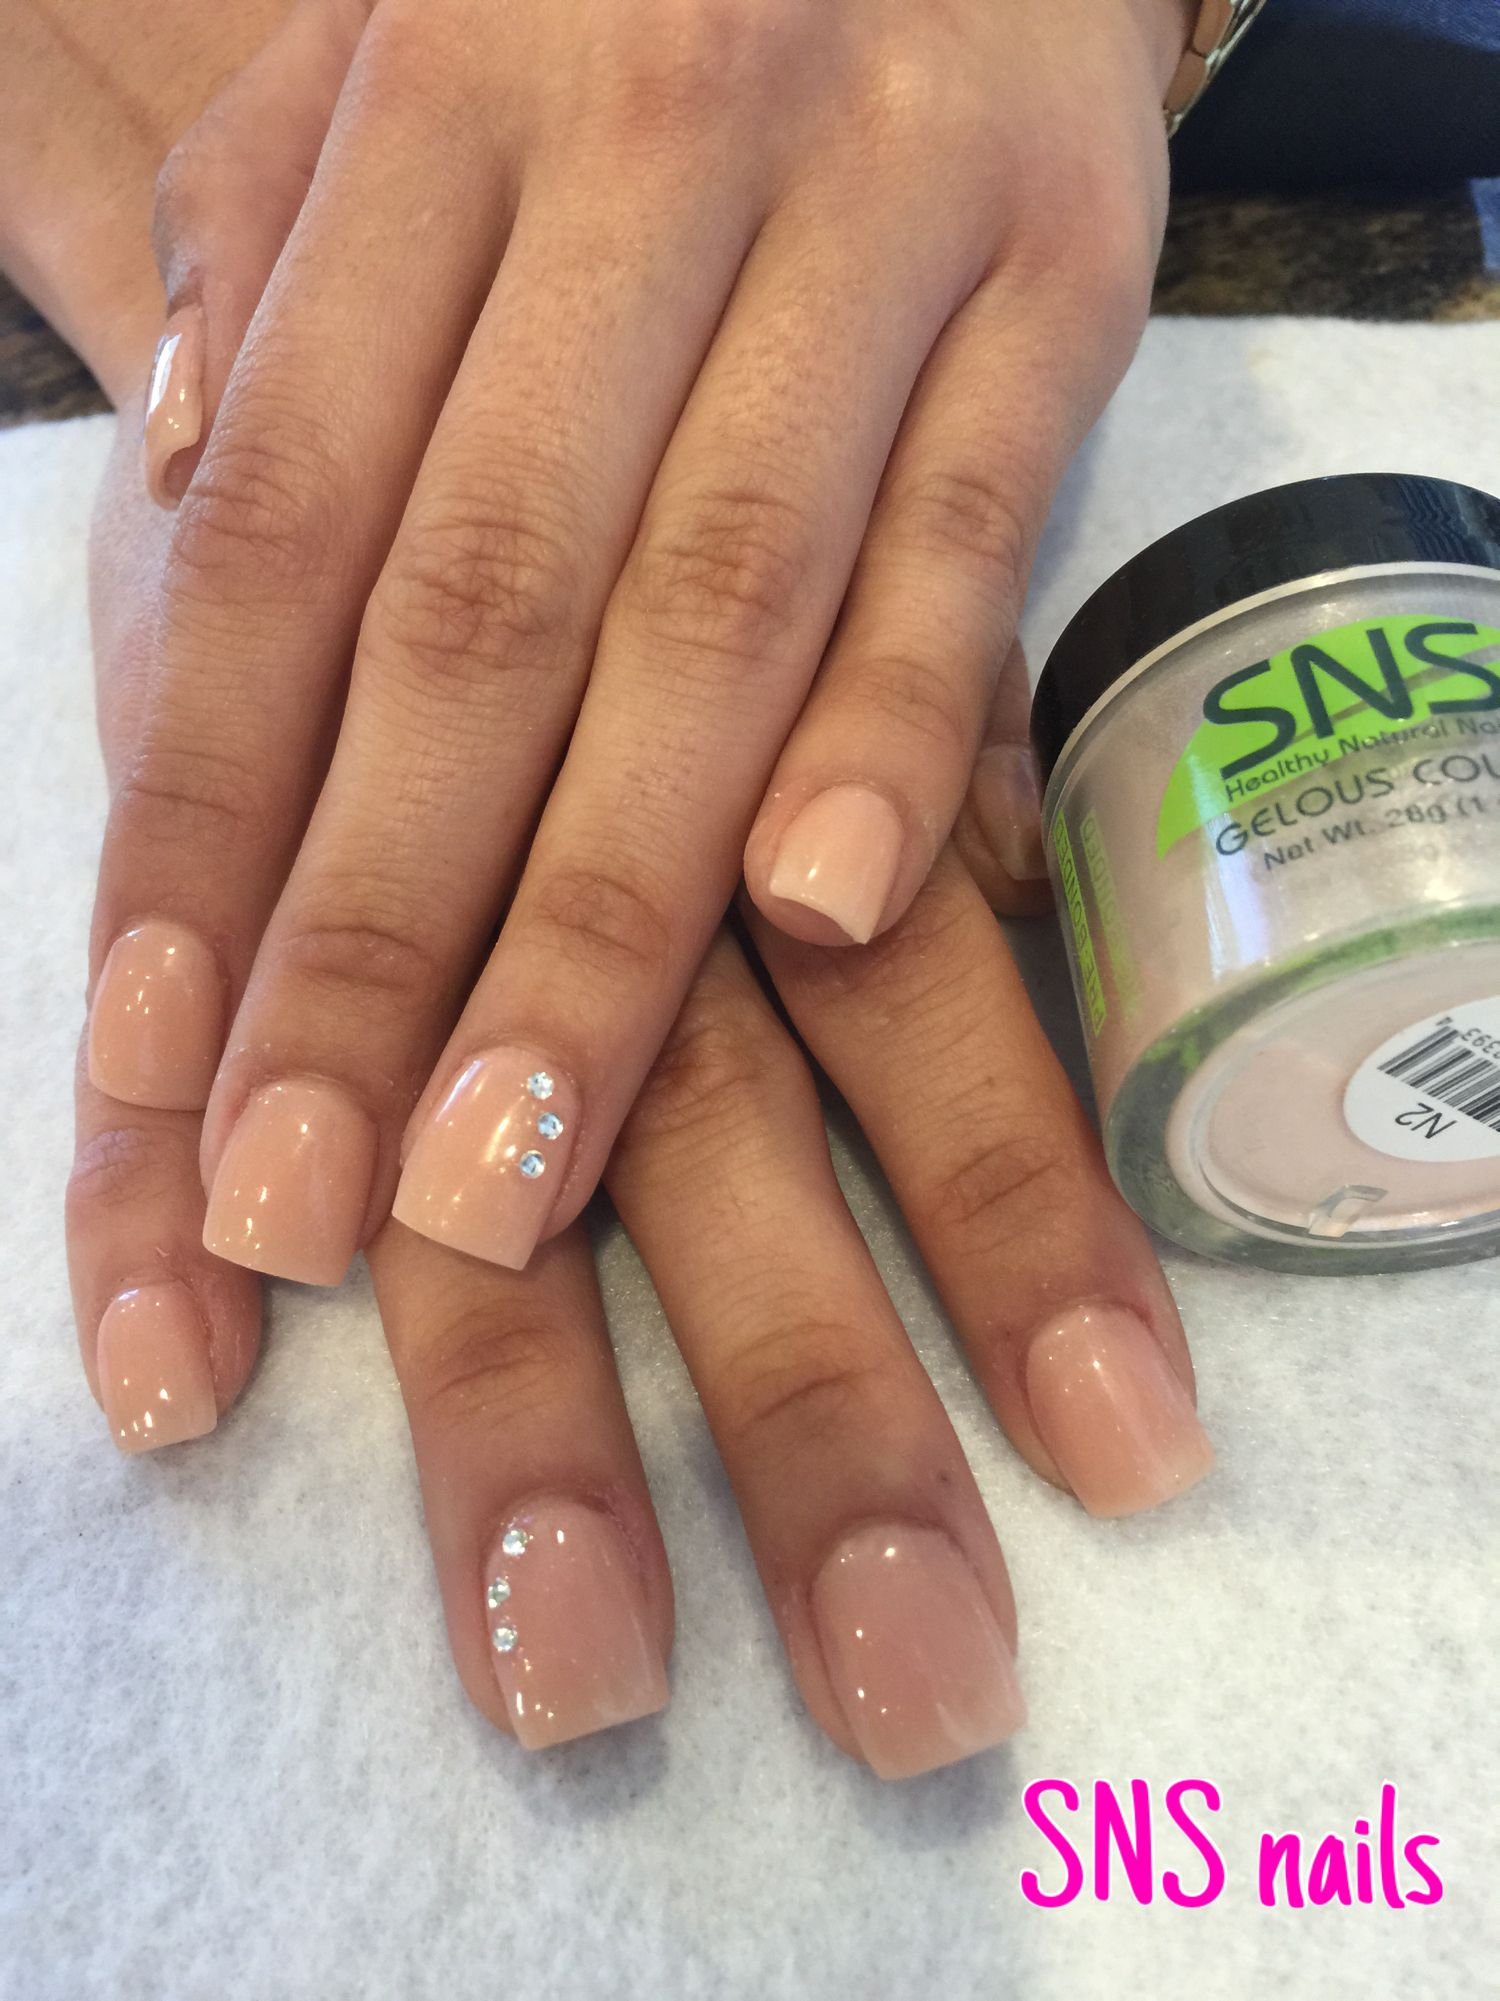 Full set SNS nails with gelous color from SNS Nude Collection (N2 ...